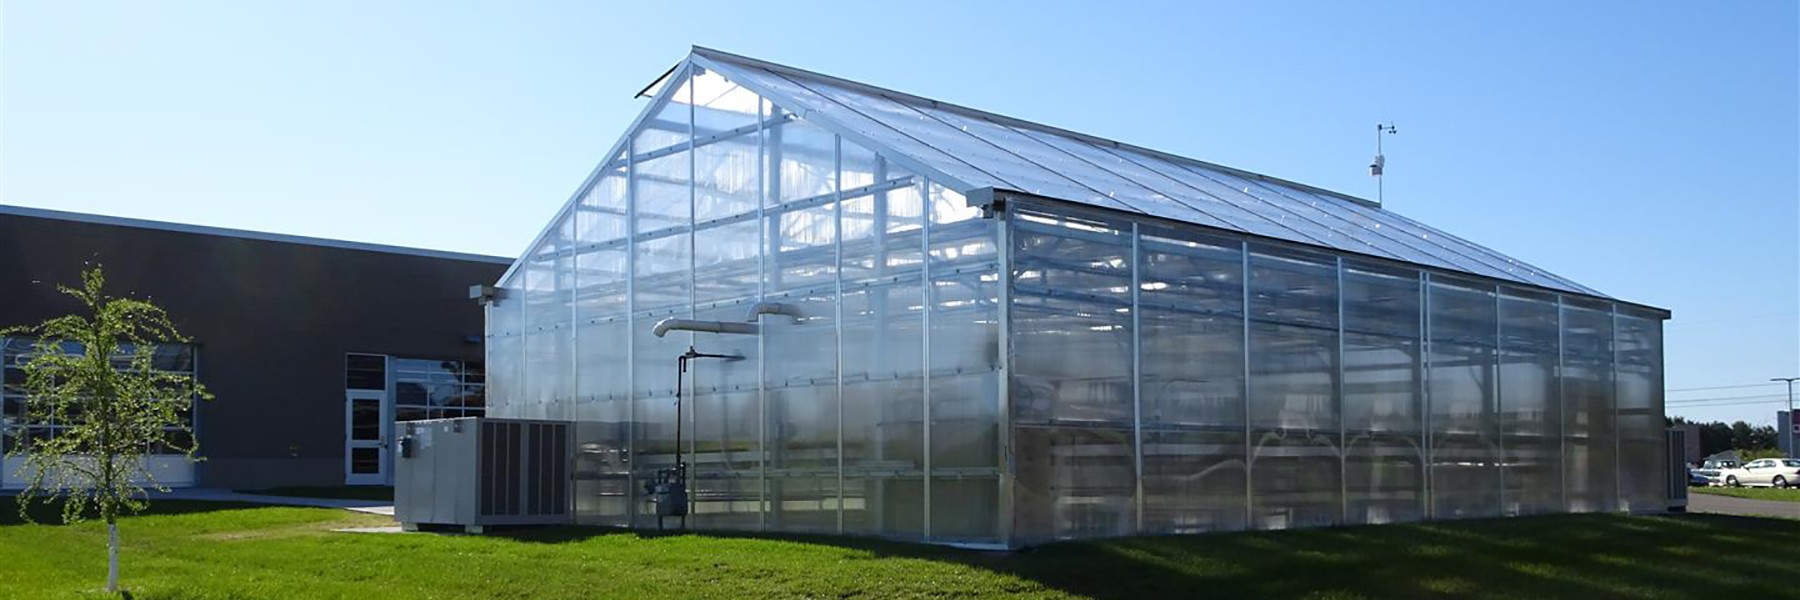 polycarbonate greenhouse foundation